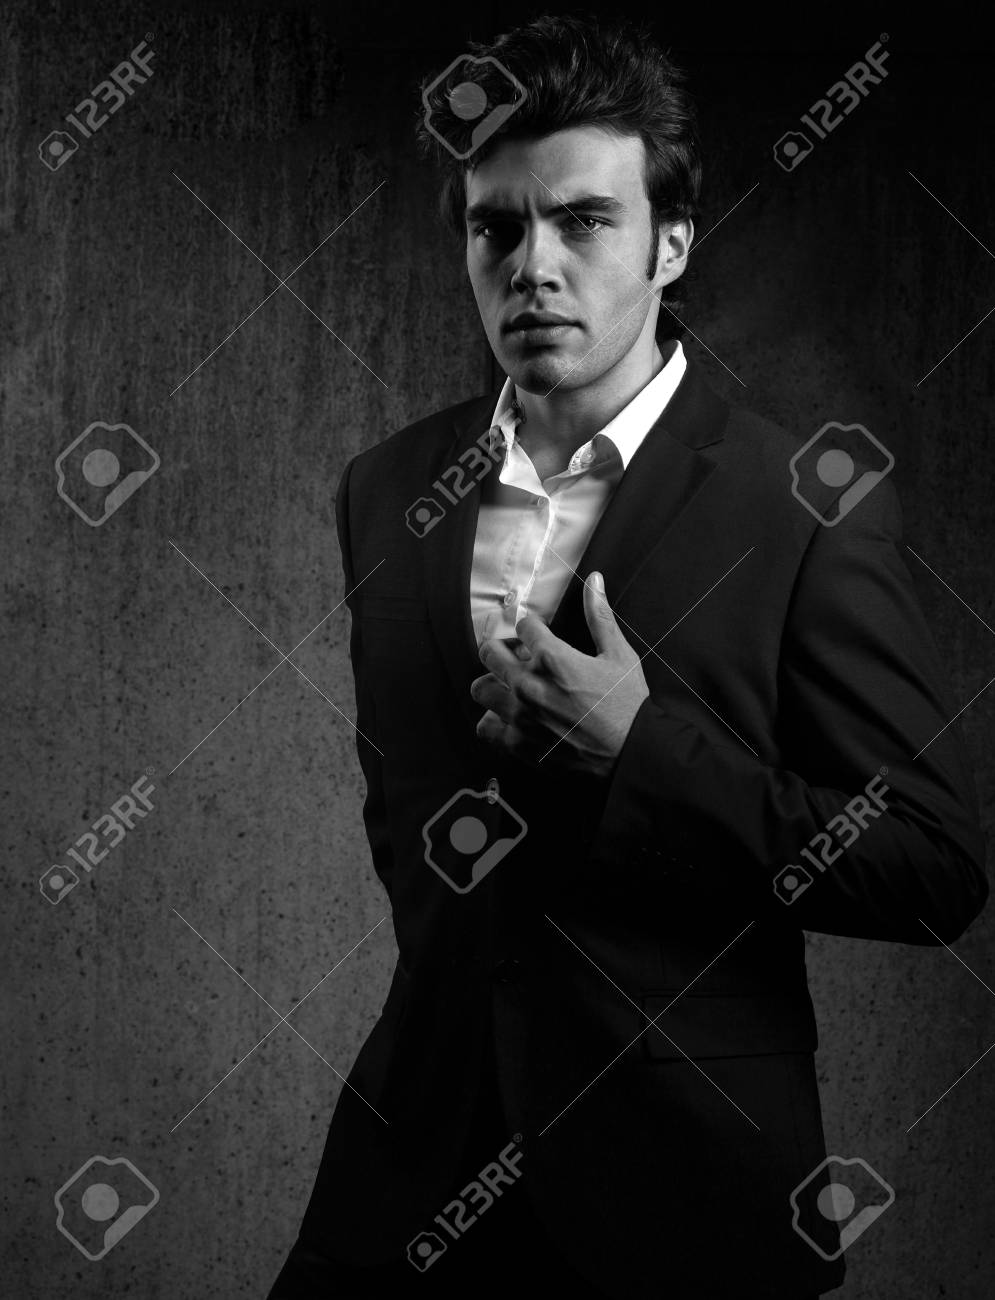 a8f02bd1 Charismatic handsome male model posing in fashion suit and white style  shirt looking on dark shadow